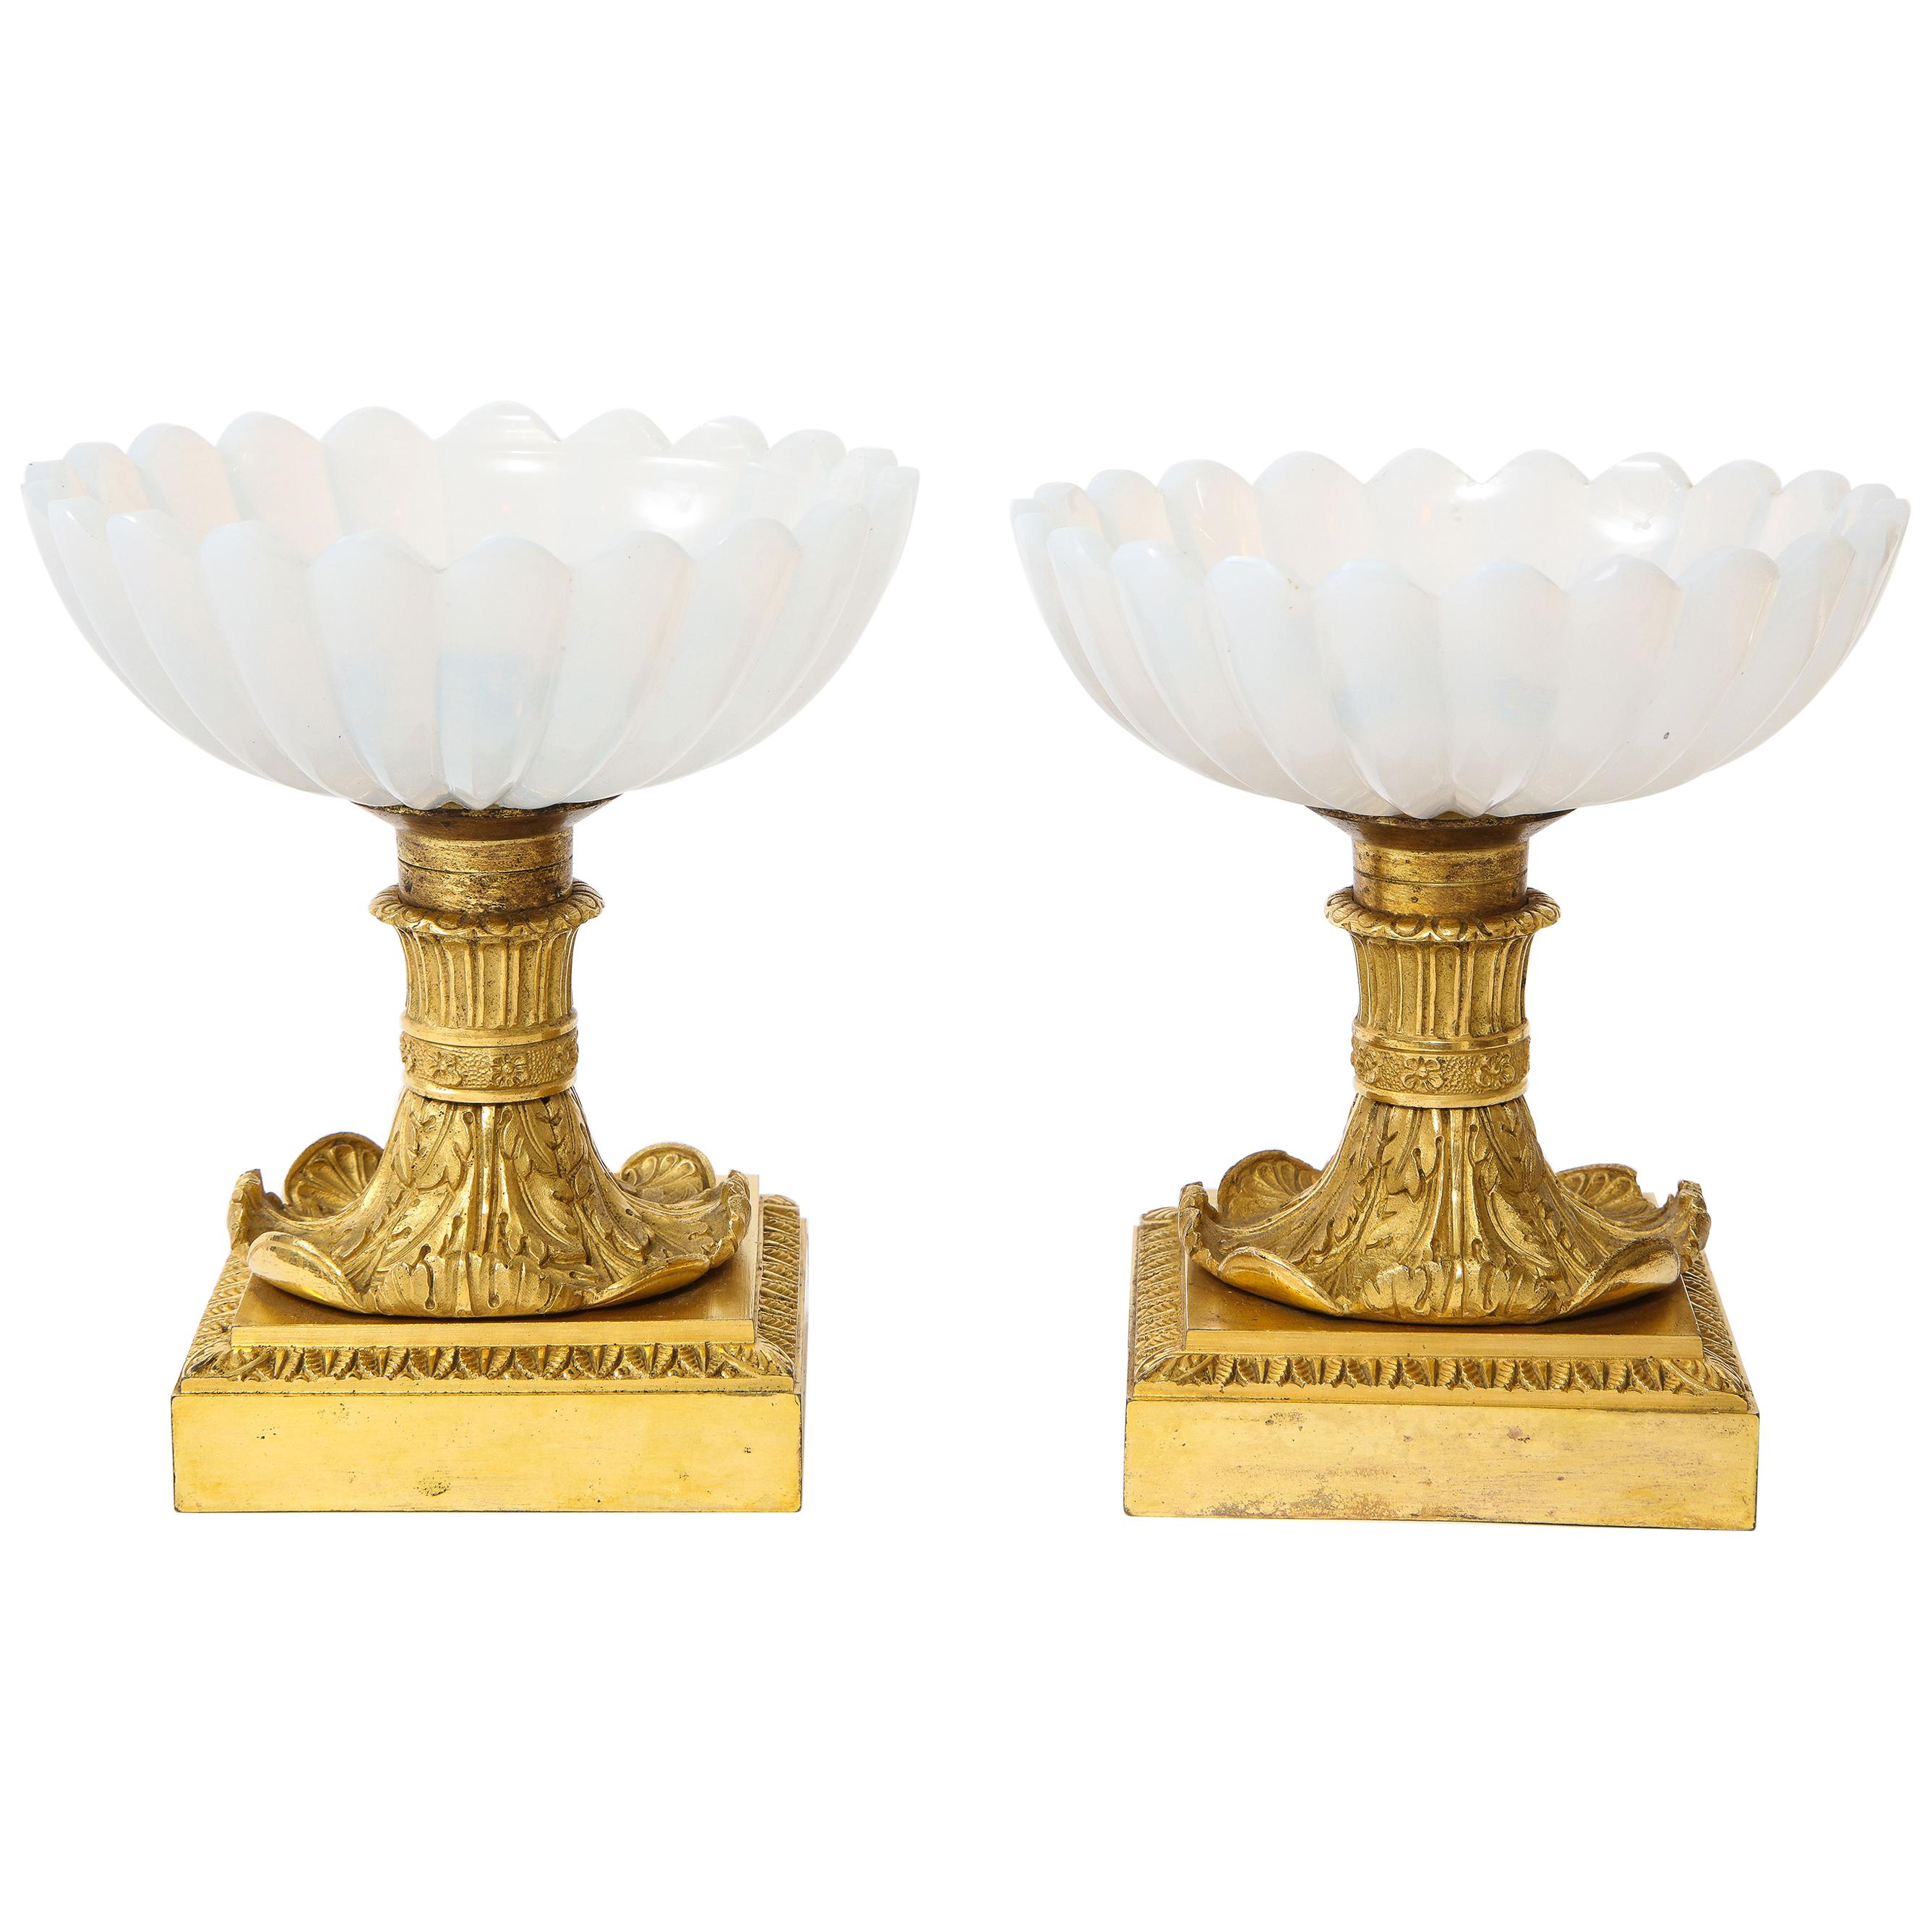 Beautiful Pair of Russian Imperial Glass and Ormolu Mounted Tazza Centerpieces